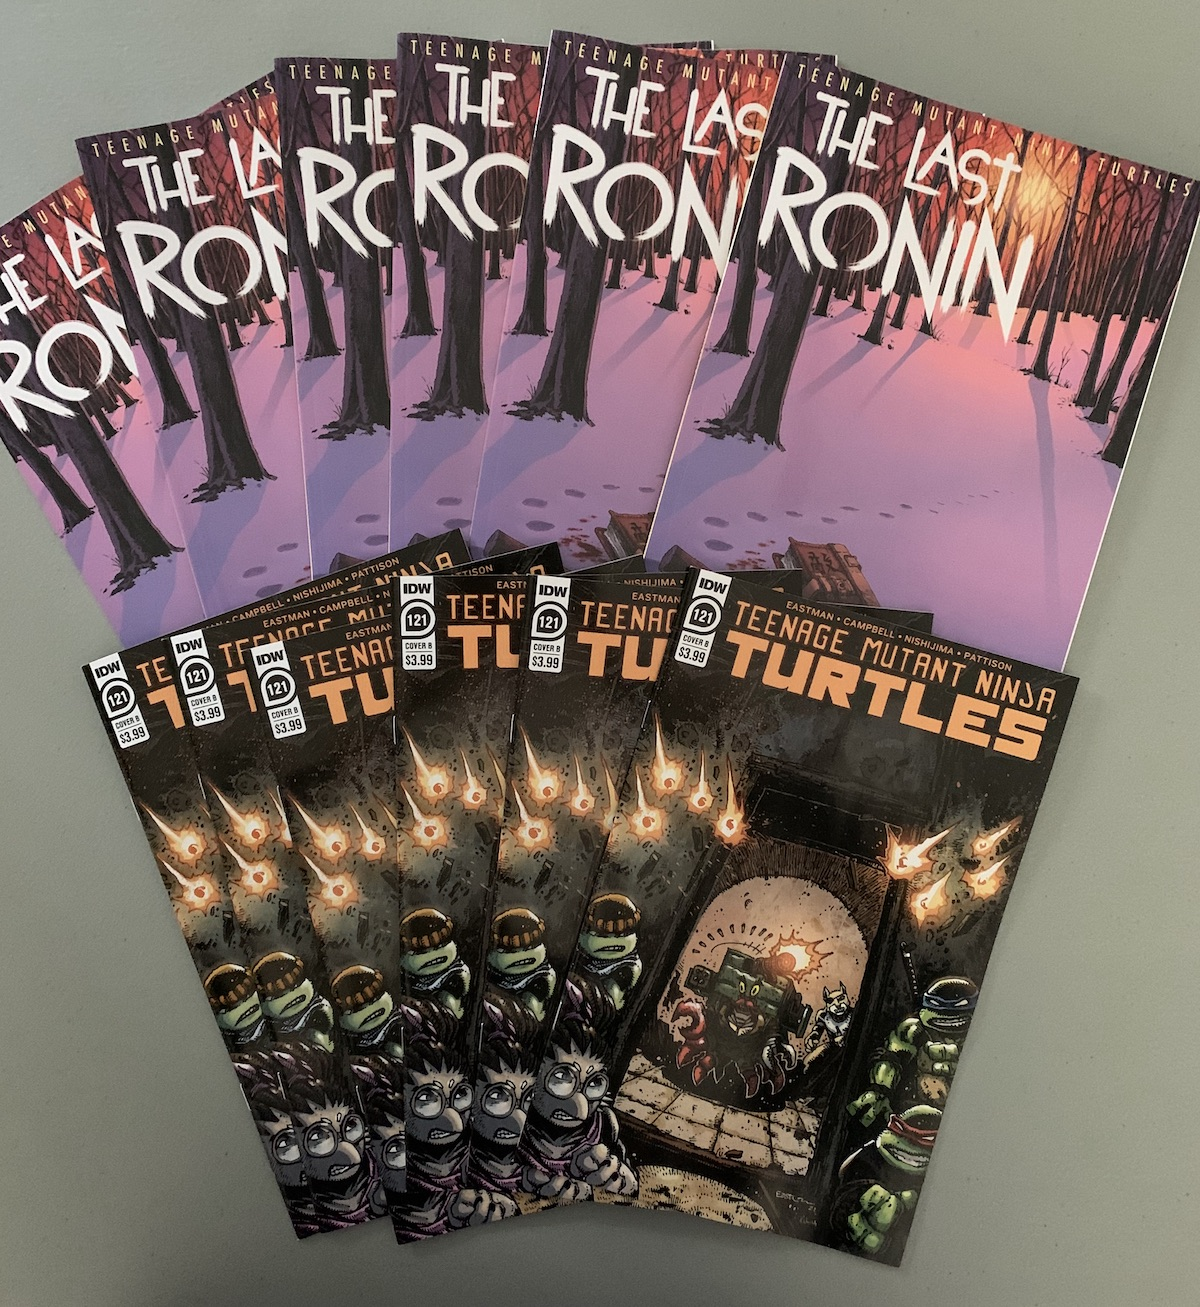 New Comic Book Day and Fan Club Giveaways